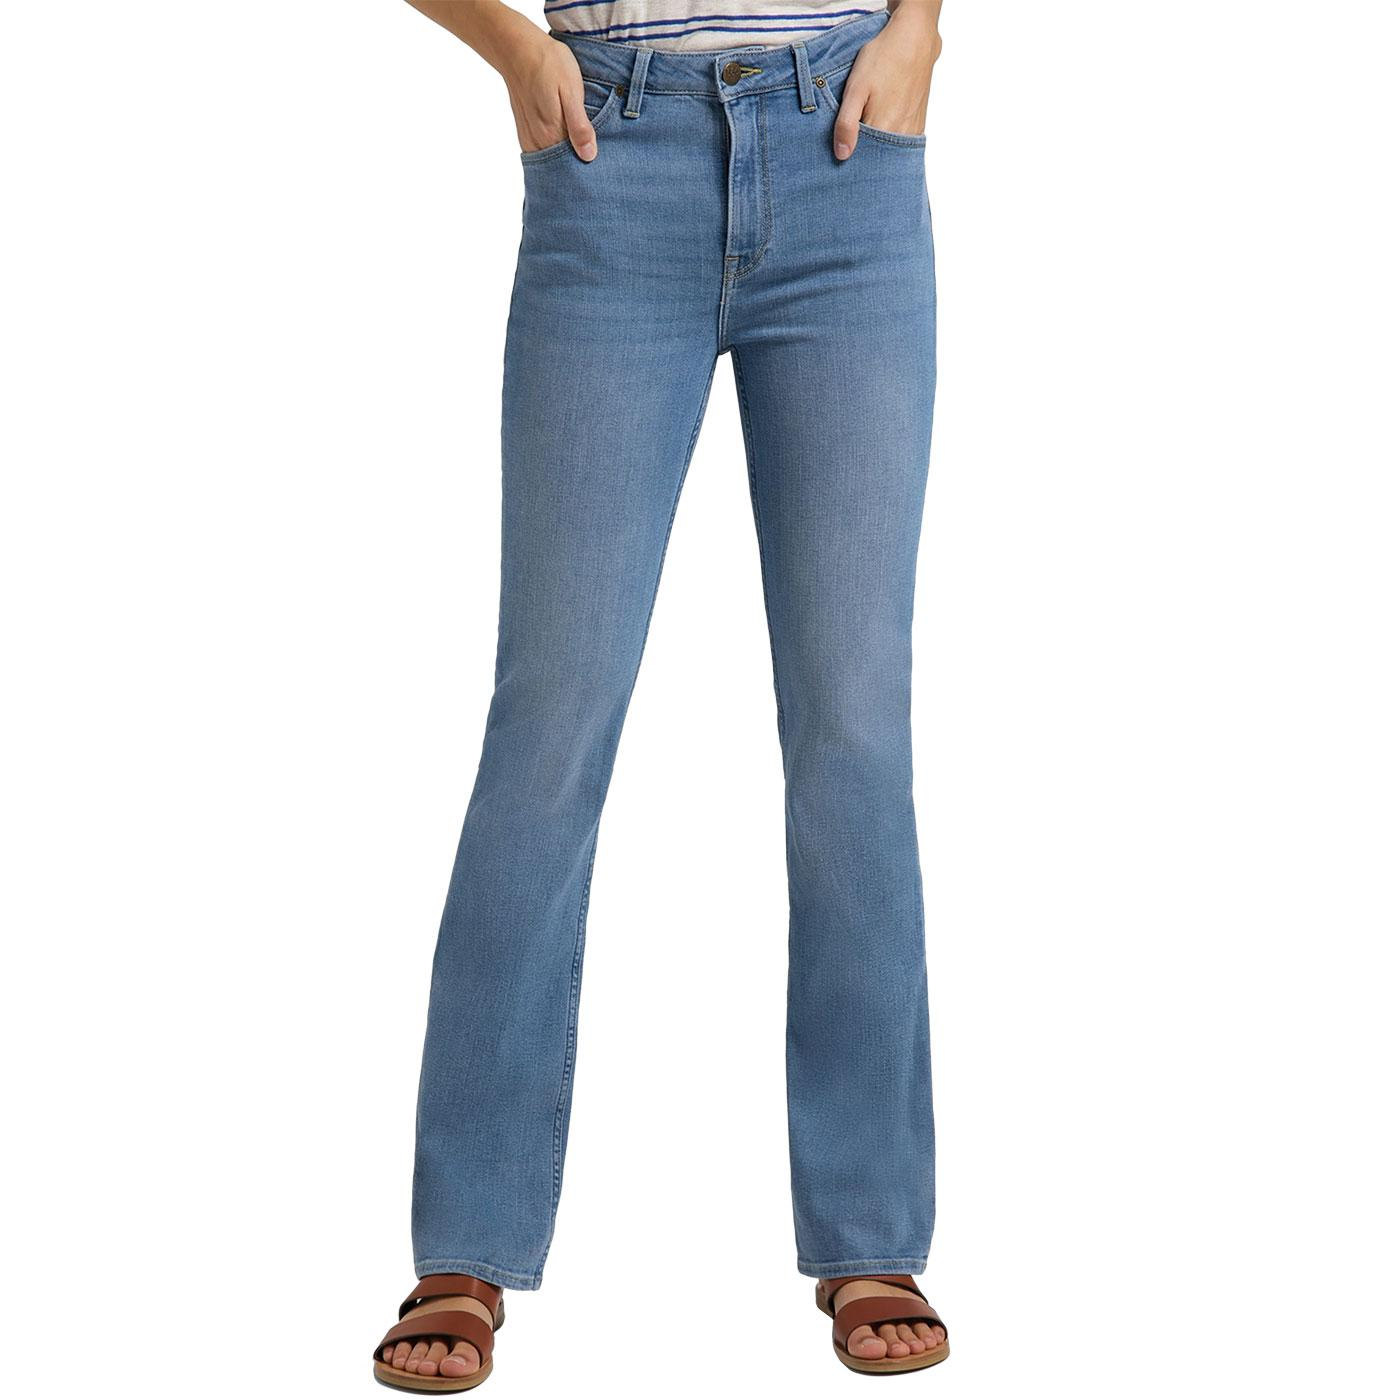 Breese LEE Skinny High Rise Bootcut Jeans (LL)